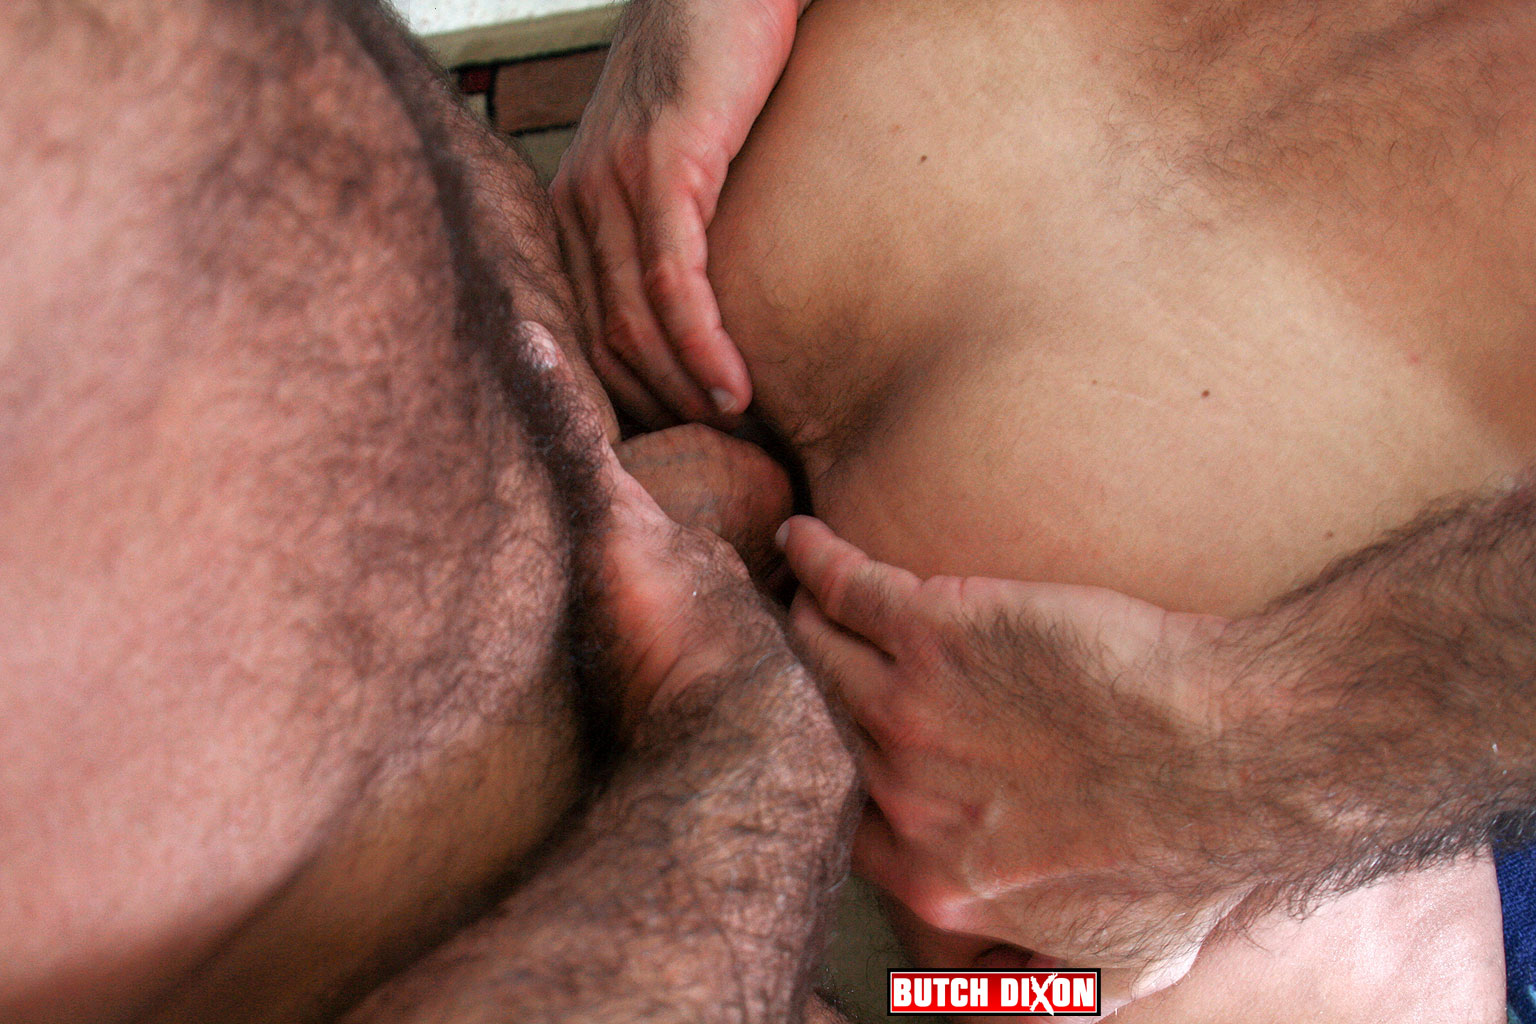 Butch Dixon Jeff Grove and Josh Ford Hairy Daddies Fucking with this Hairy Daddy Cock 10 Jeff Grove and Josh Ford:  Amateur Hairy Daddies Barebacking